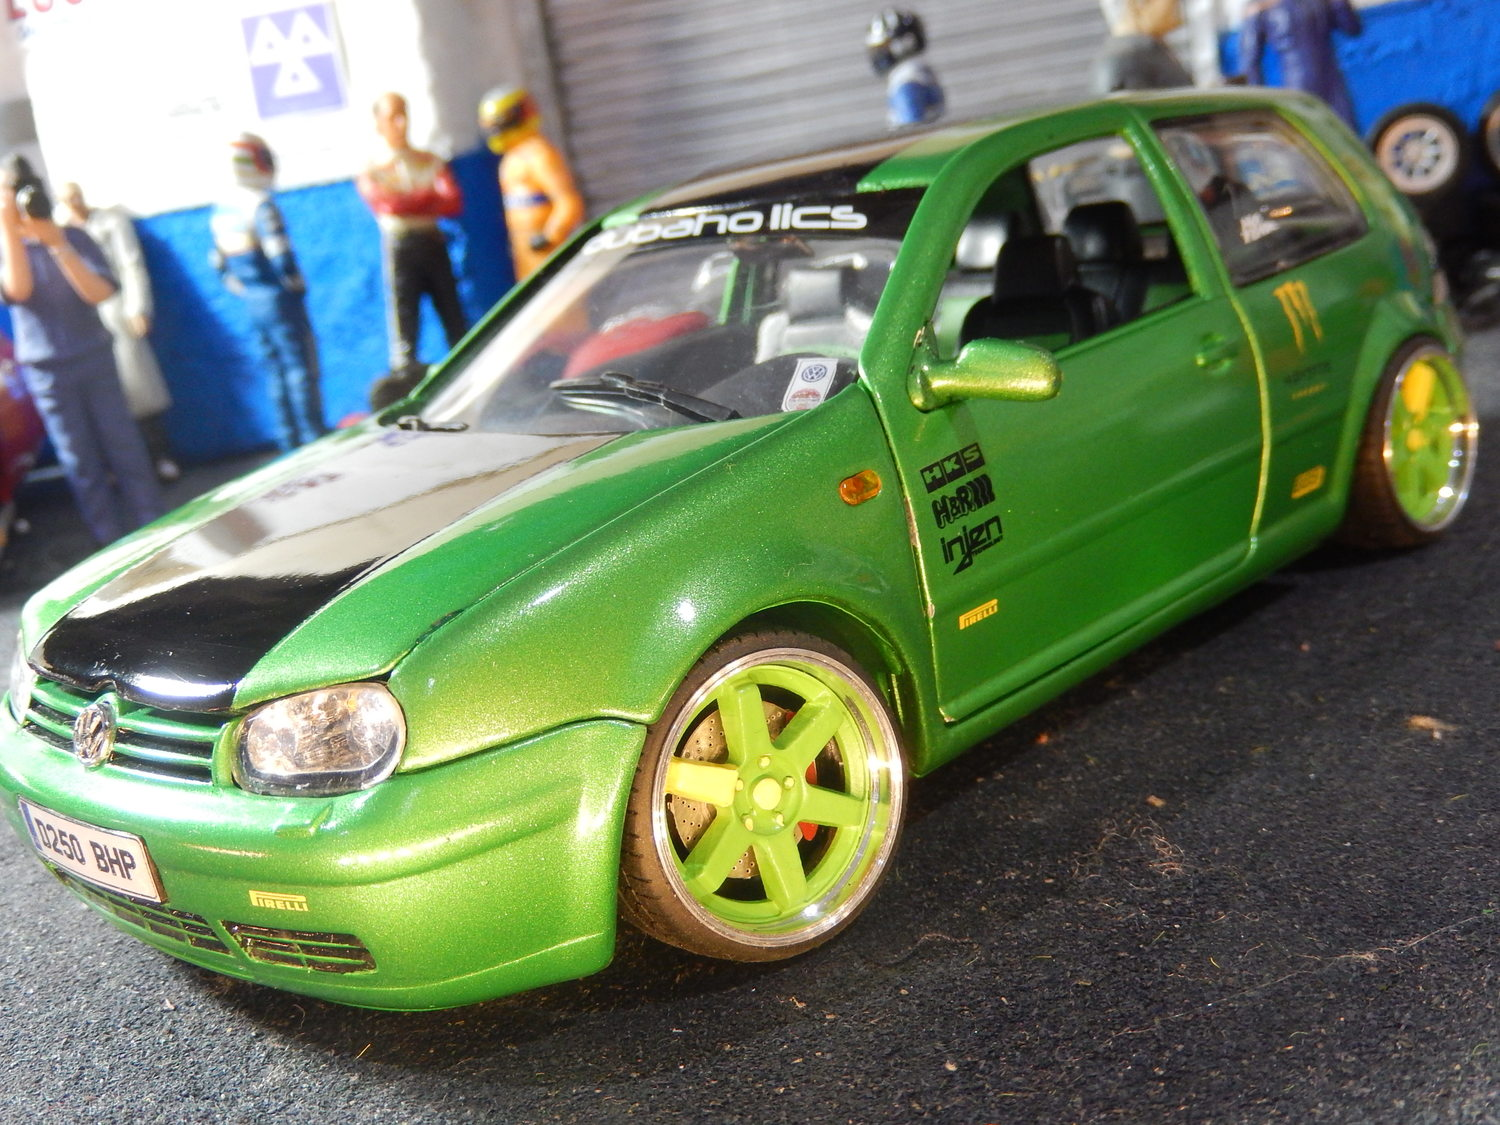 Vw Golf Mk4 3 2l V6 Boxed 1 18 Scale Total One Off Modified Tuning Cs Diecast Tuning